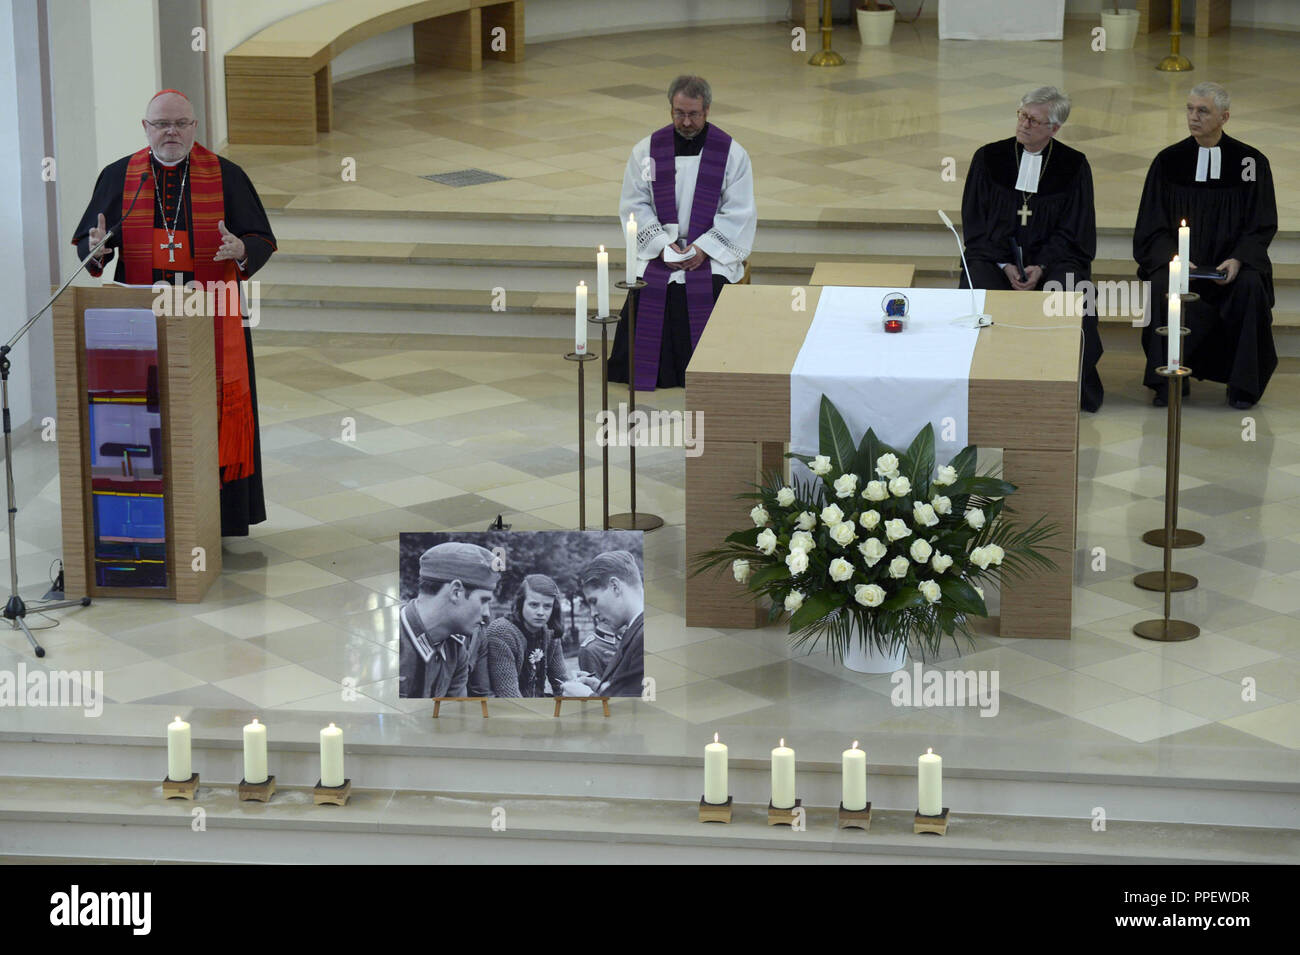 To commemorate the resistance fighter Sophie Scholl who was assassinated 70 years ago, Hans Scholl and Christoph Probst from the 'White Rose', the Archbishop of Munich and Freising, Cardinal Reinhard Marx (left), and the Bishop of the Evangelical Lutheran Church in Bavaria, Heinrich Bedford-Strohm (2nd from right) celebrate a church service in the church on the grounds of the Stadelheim Prison. - Stock Image